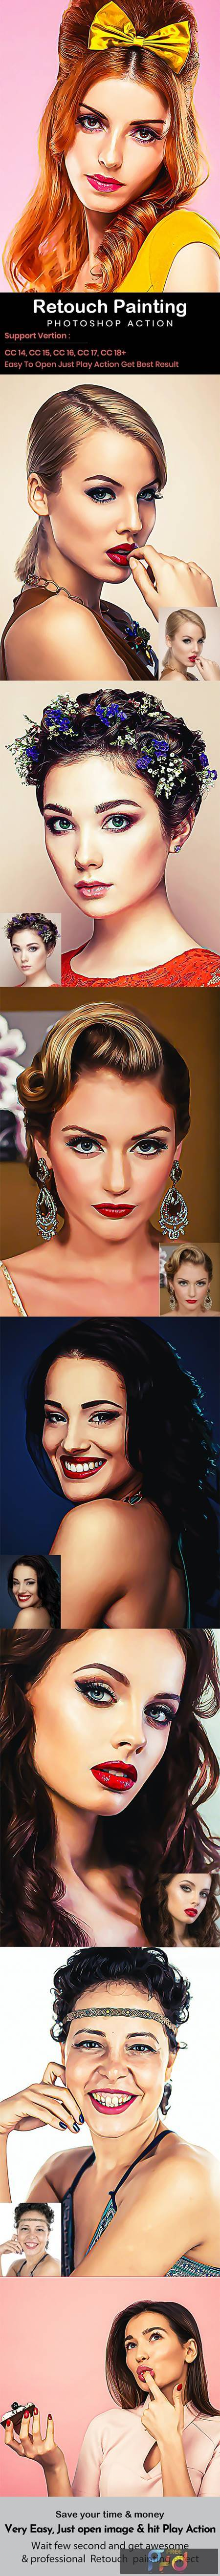 Retouch Painting Action 29150706 1